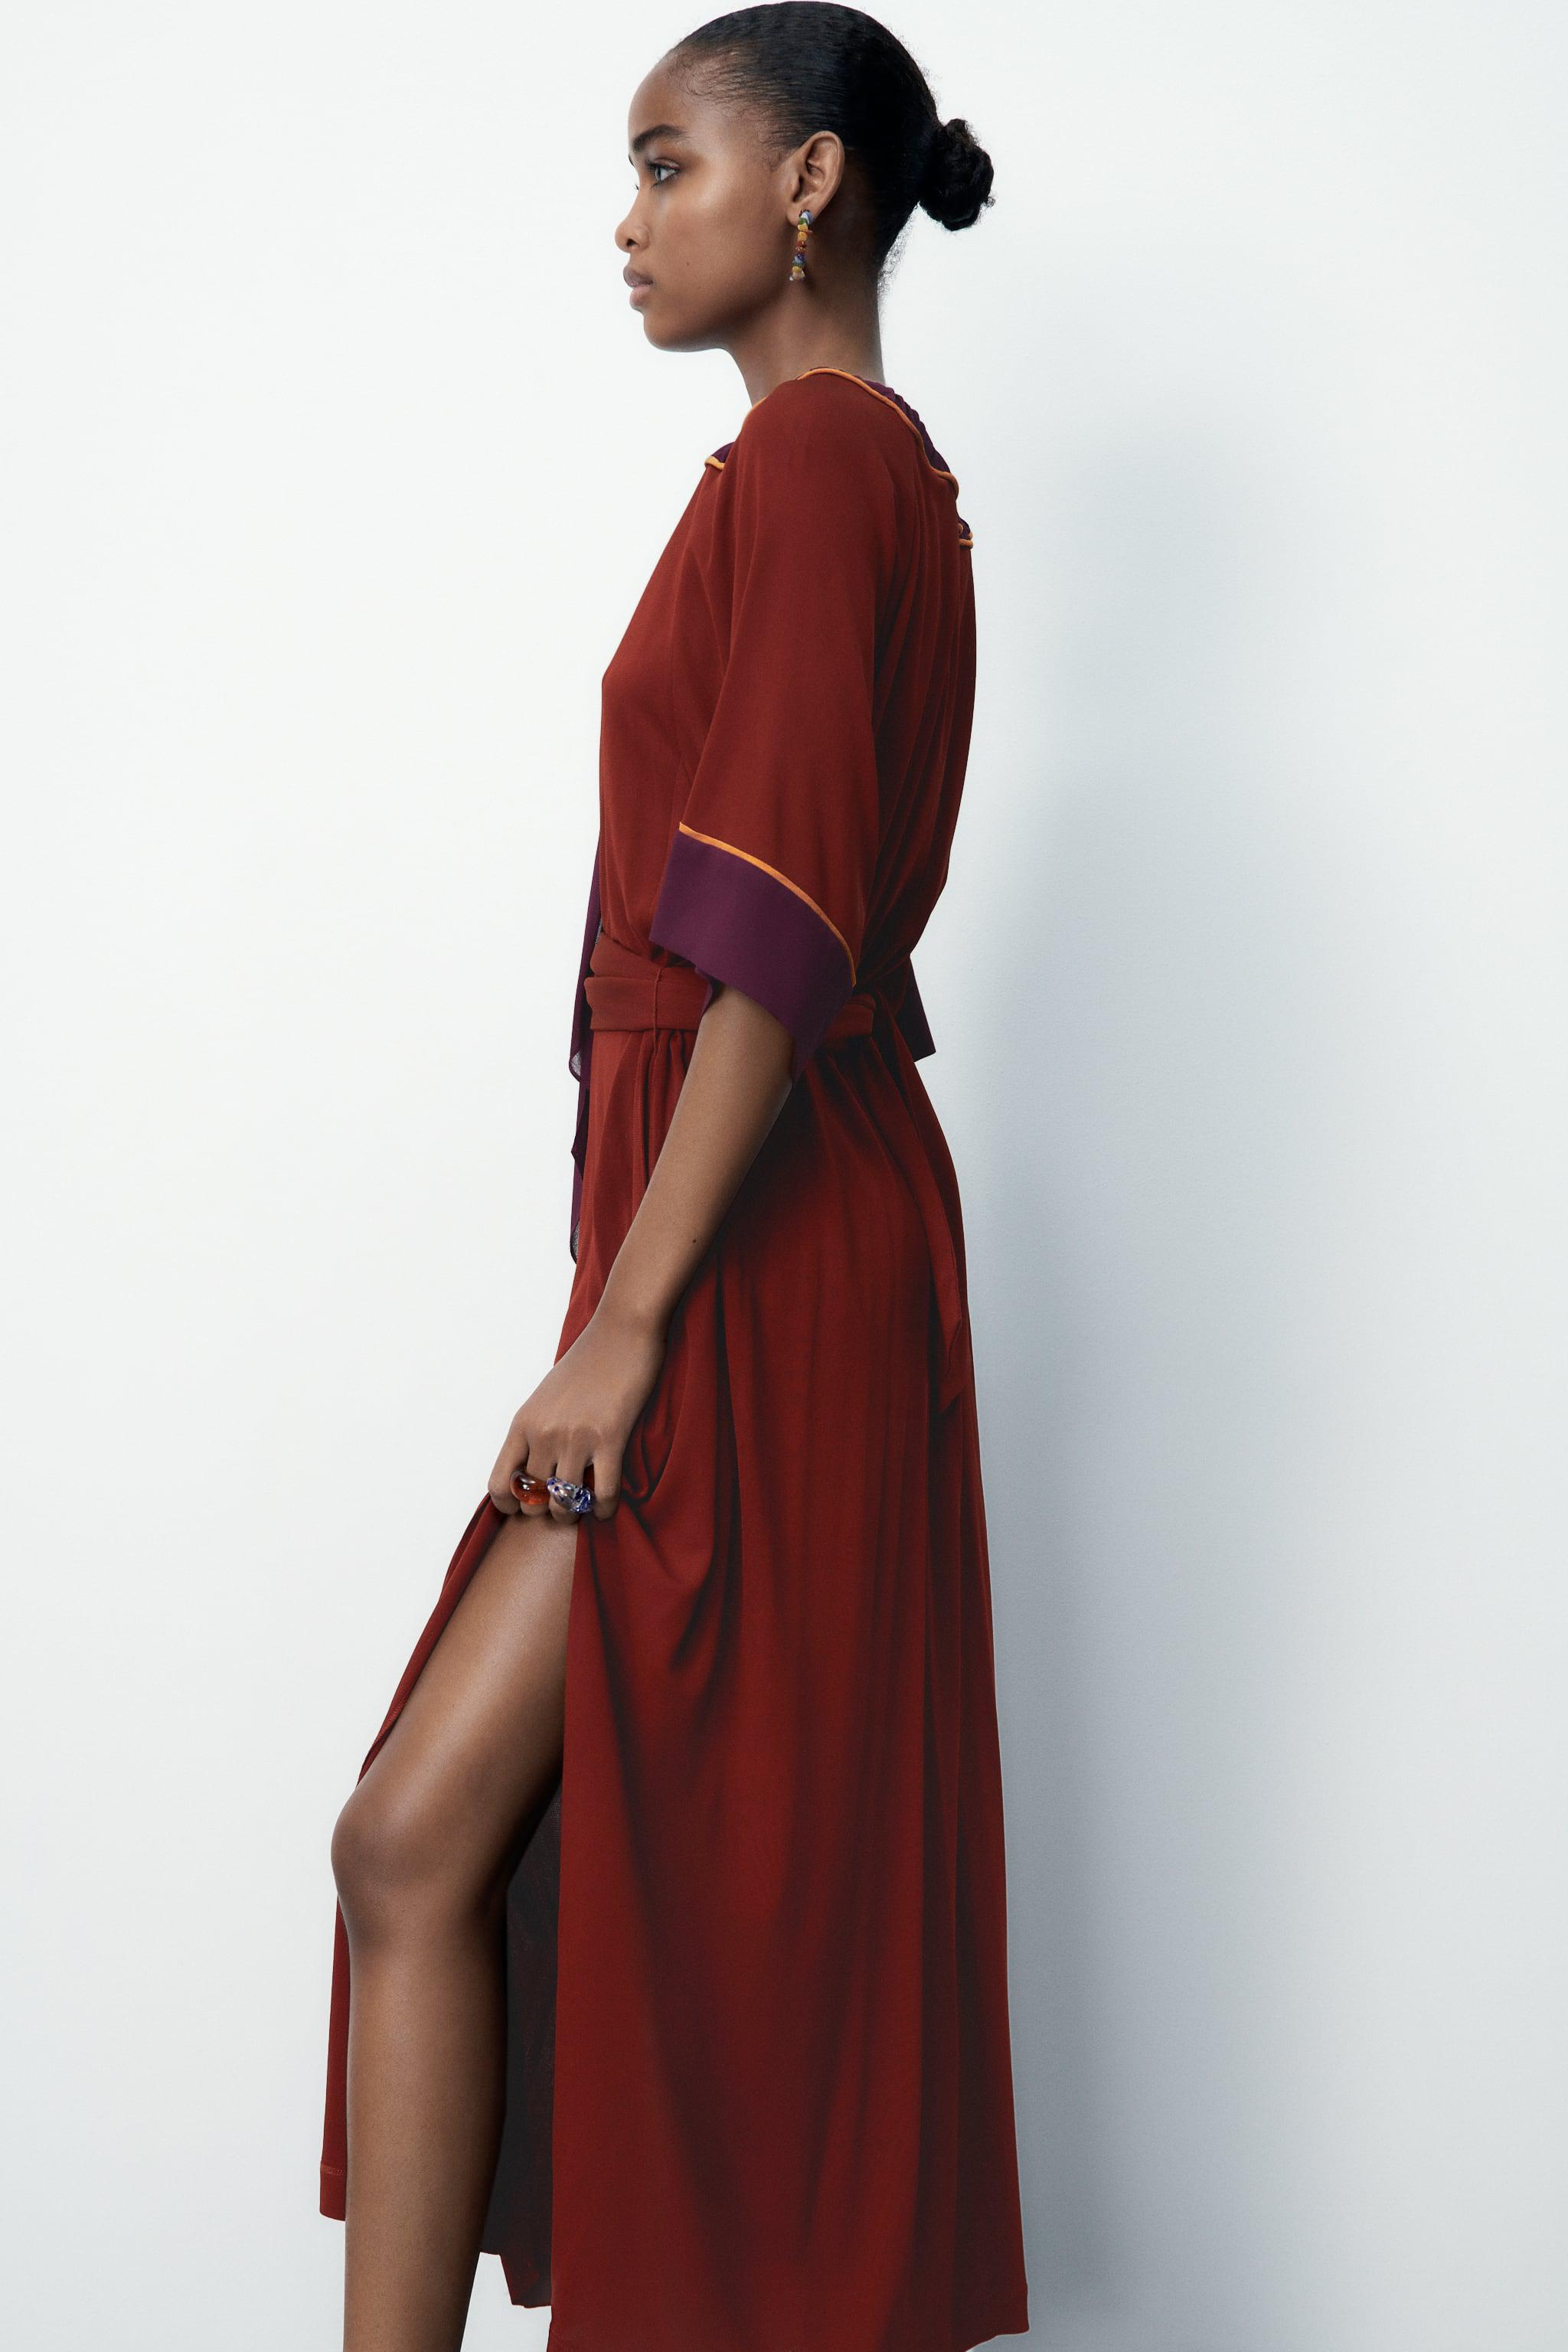 LIMITED EDITION CONTRASTING DRESS 4